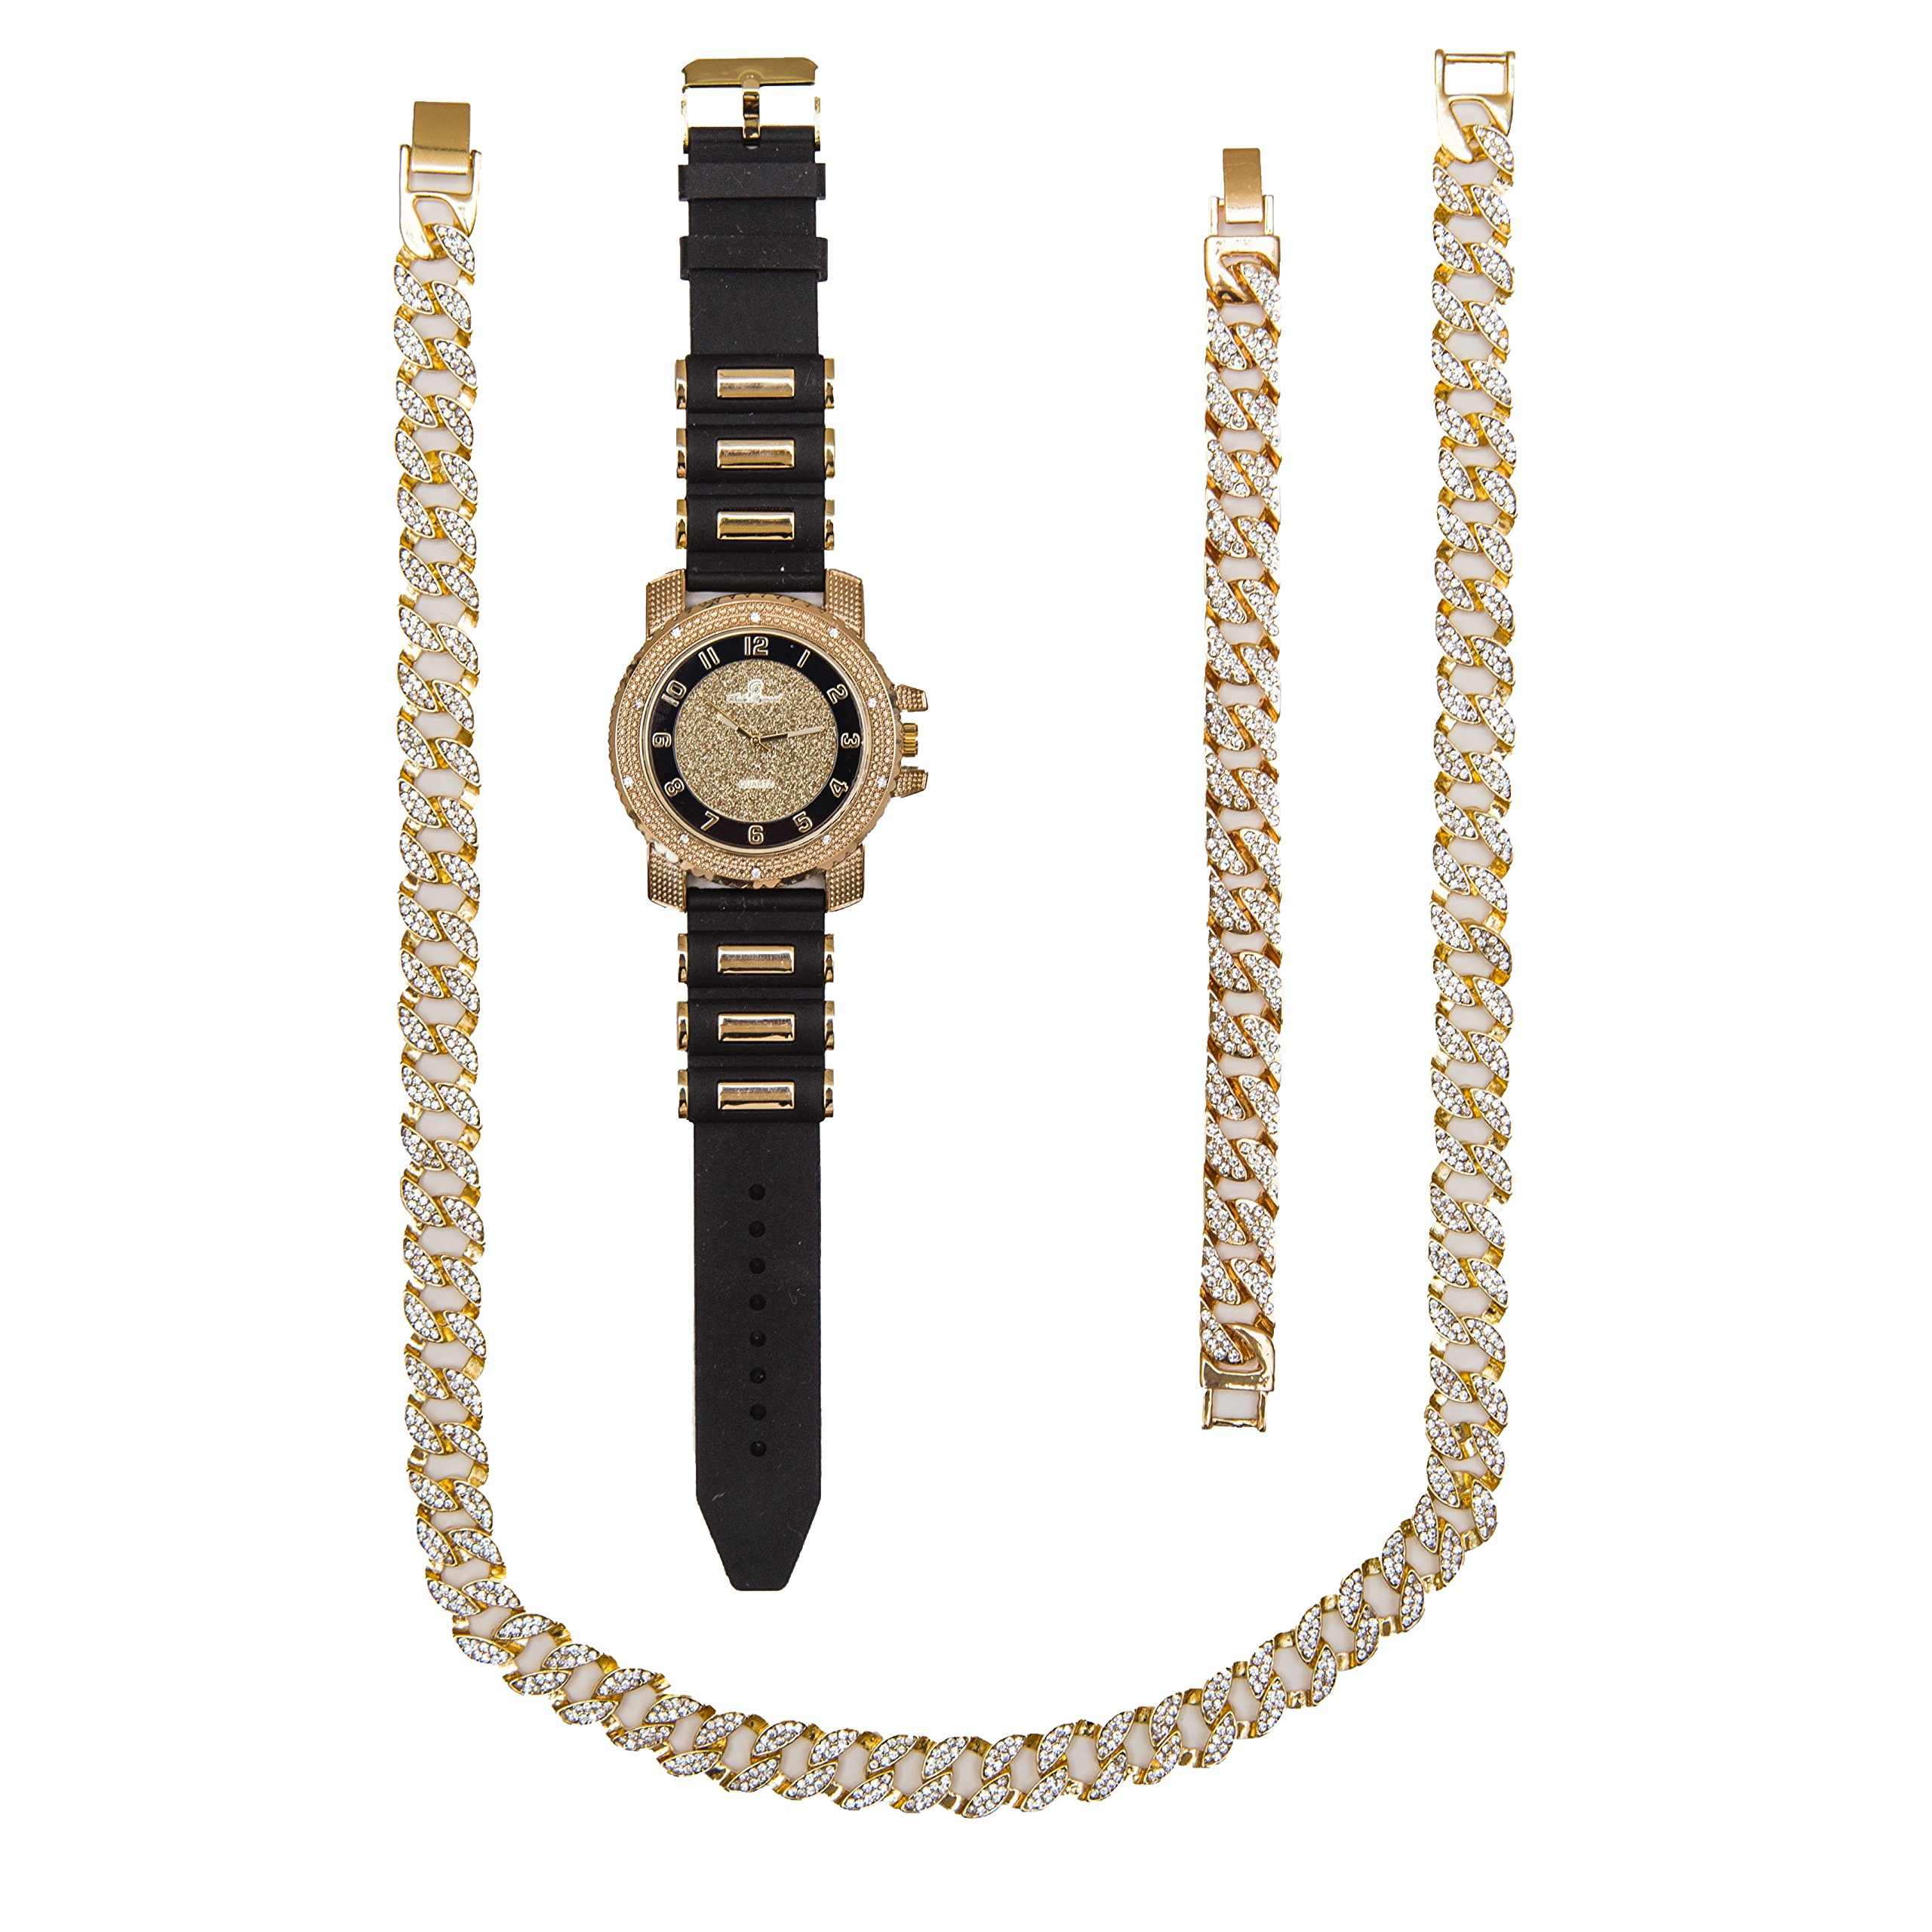 Bling-ed Out Complete Gift Set Hip Hop Unique Interlocking Pattern Gold Cuban Necklace, Bracelet and Bling'd Out Rubber Bullet Band Watch - 7758RBN Black Gold